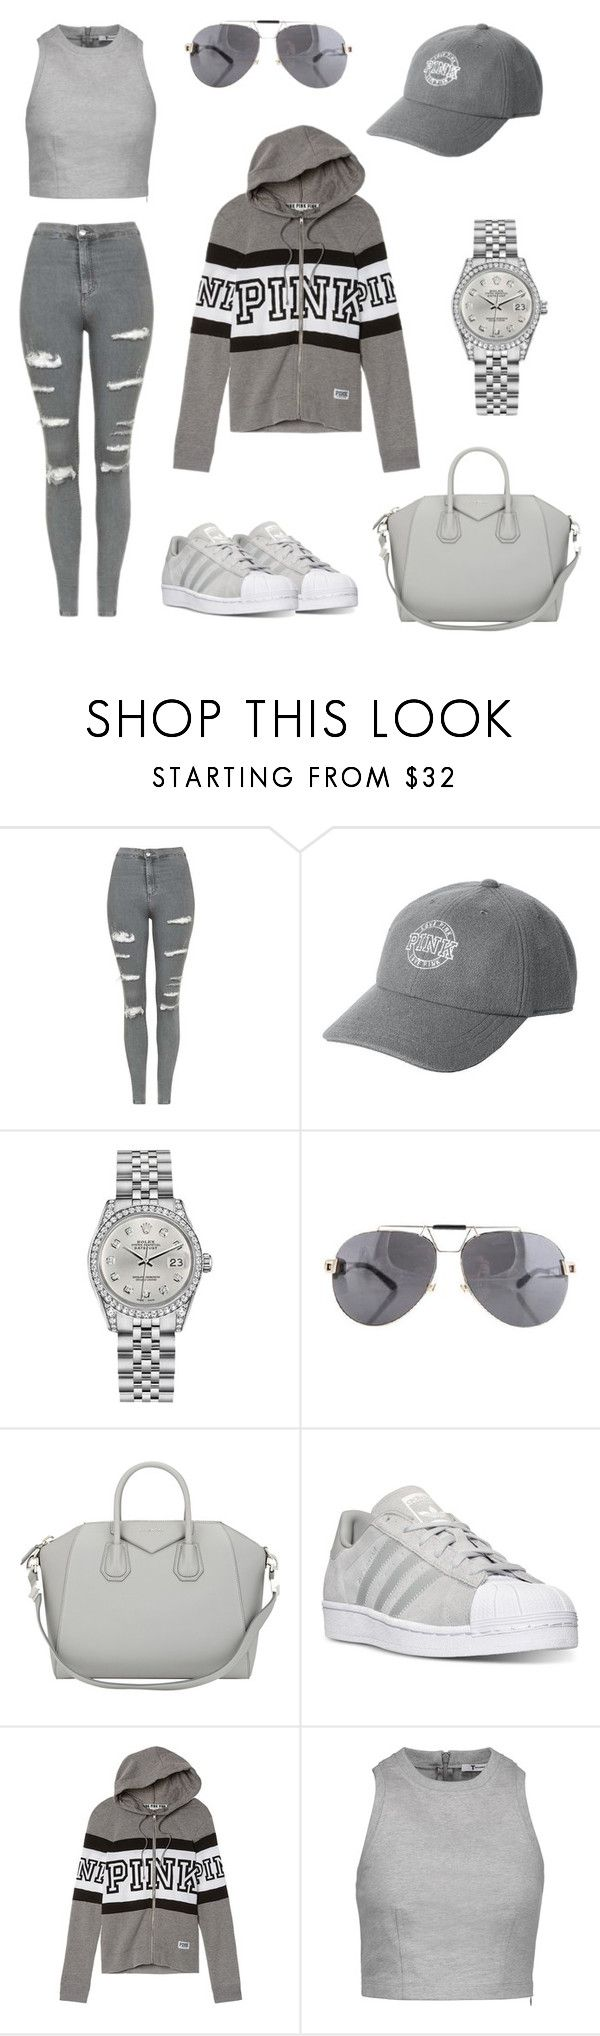 """""""Grey series"""" by megs78 ❤ liked on Polyvore featuring Topshop, Victoria's Secret, Rolex, Versace, Givenchy, adidas and T By Alexander Wang"""